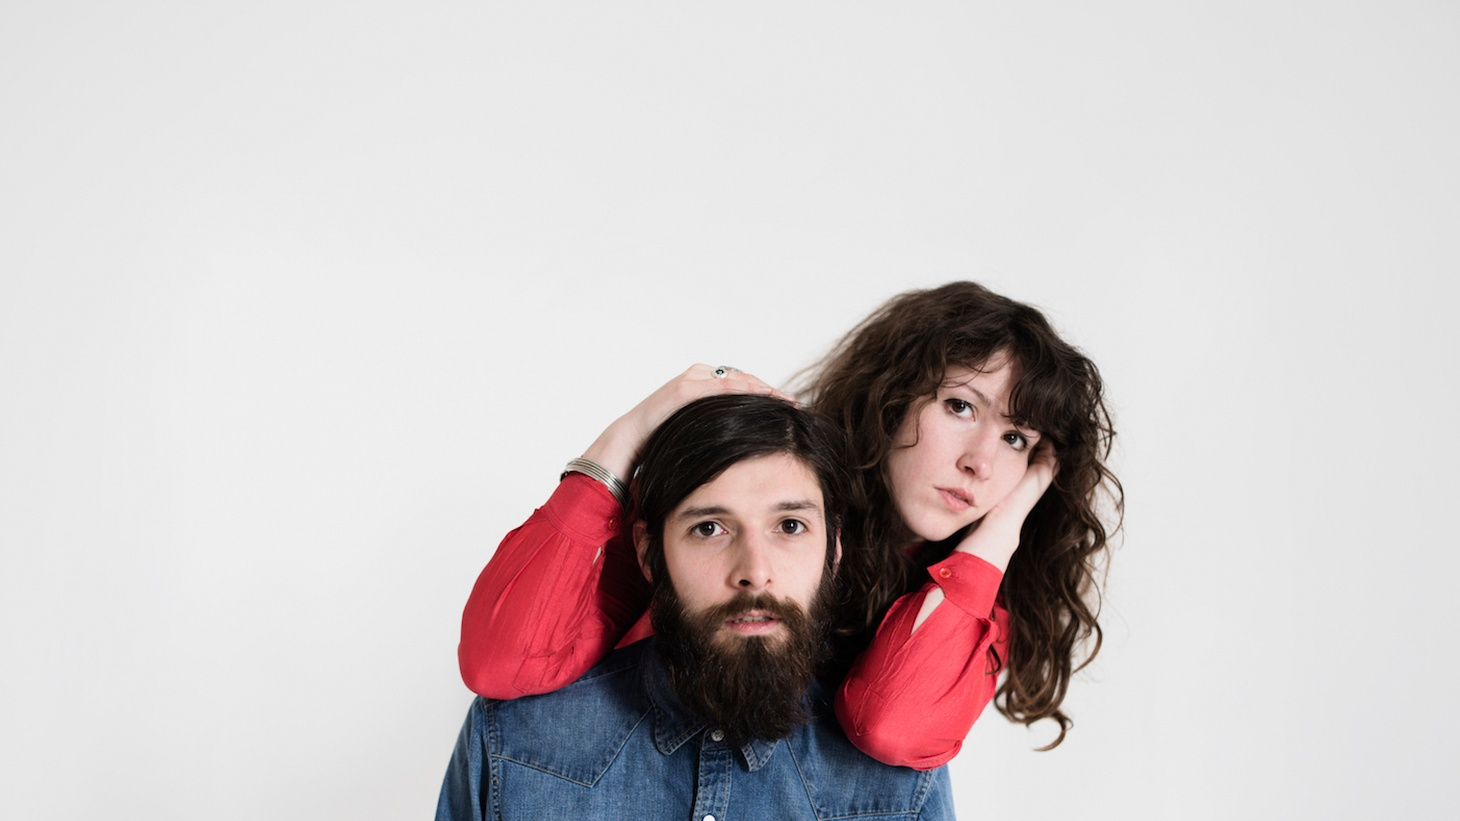 """Widowspeak's gorgeously languid tunes match its pace of creation, with songs like """"Cosmically Aligned"""" drifting along like a less guitar-pedal heavy version of Mazzy Star in a country-waltz time. Members of the band Quilt help out throughout, as do the rhythm section of Woods, lending extra touches that make All Yours Widowspeak's most complete record to date."""